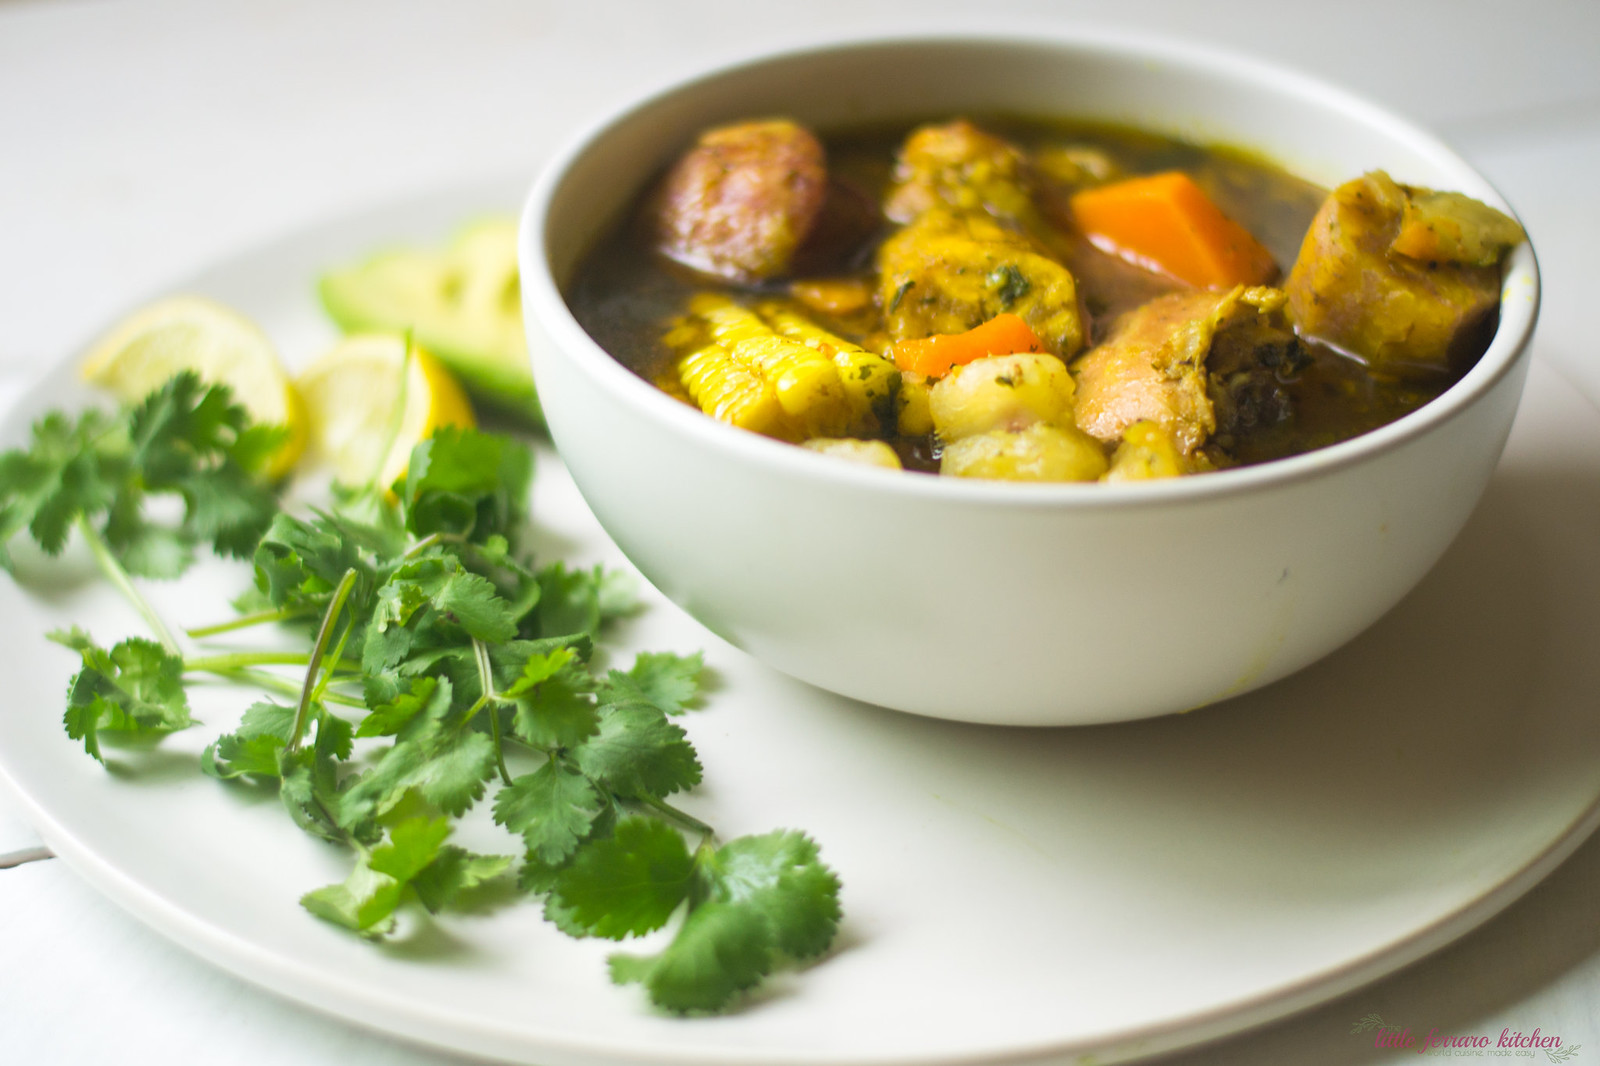 Dominican Sancocho Recipe is a hearty three meat stew filled with robust flavors of sazon, adobo and packed with hearty bites of yucca, plantain and corn.